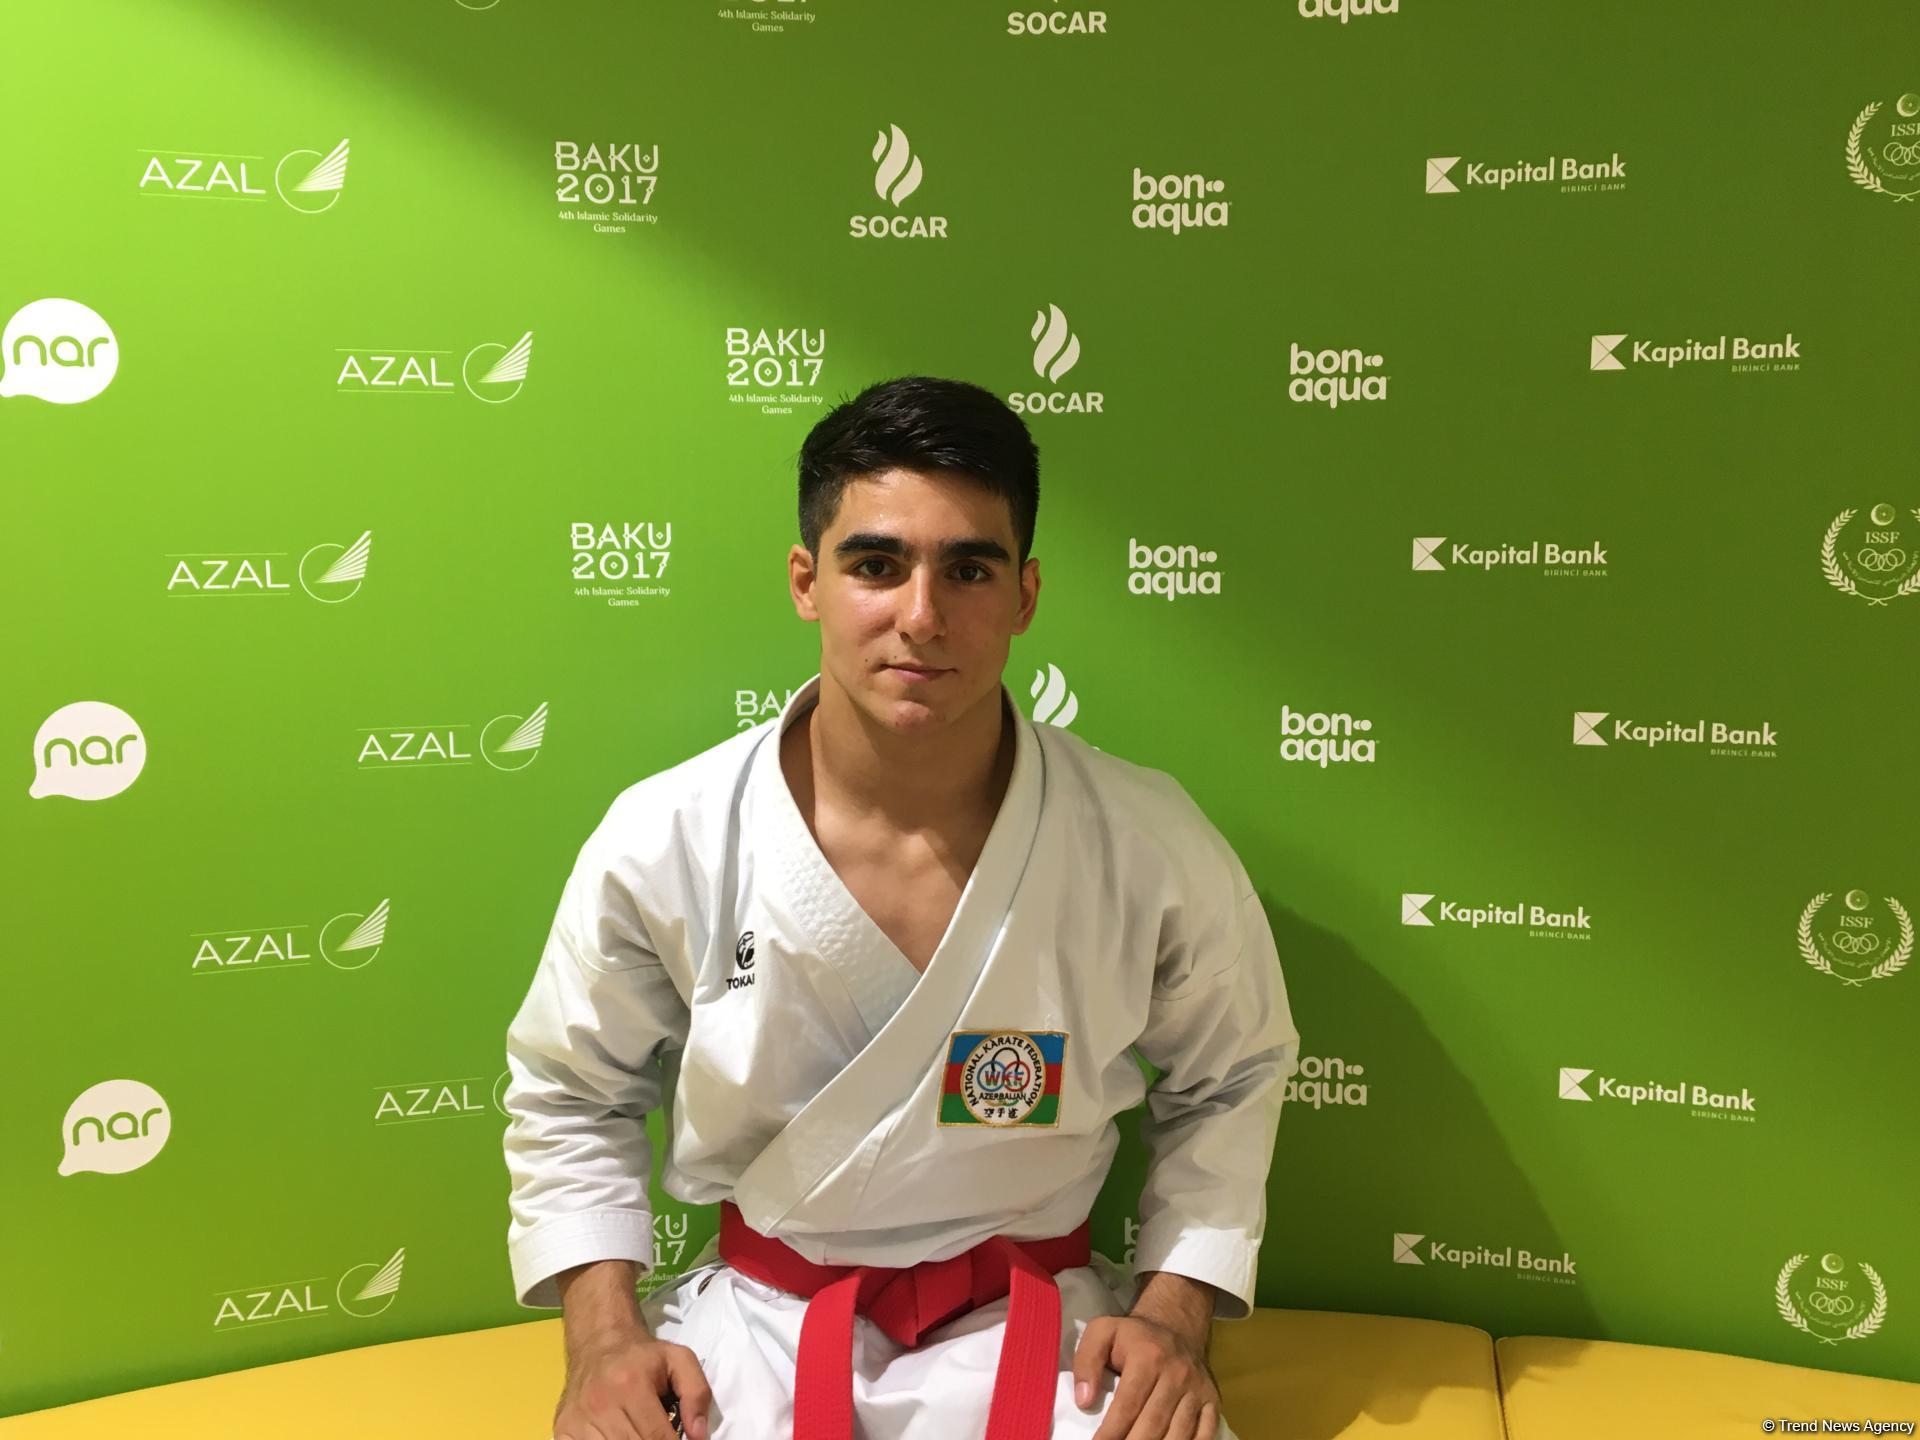 Azerbaijani athlete says fans' support helps to win